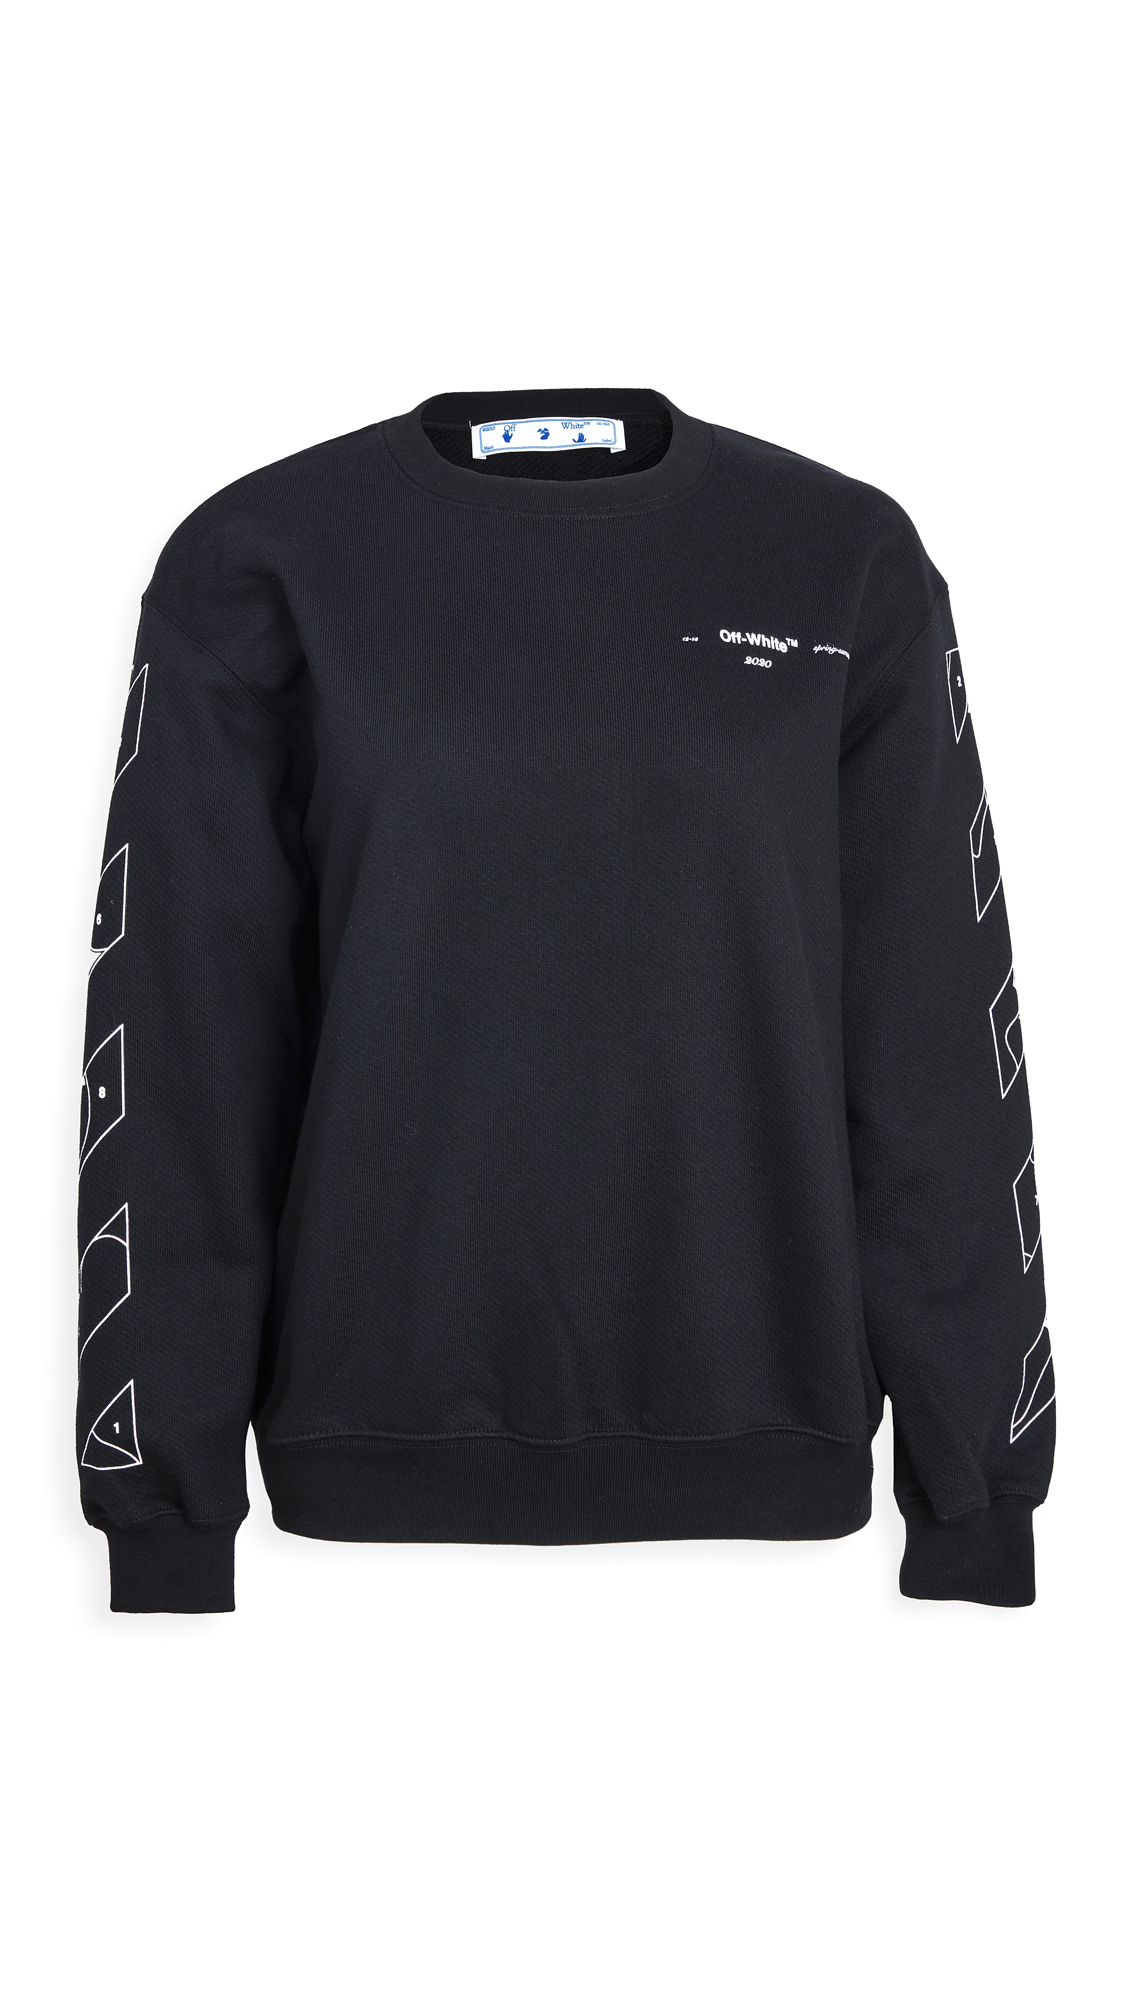 Photo of Off-White Puzzle Arrow Oversize Crew Neck Sweatshirt - shop Off-White Clothing, Shirts, Tops online